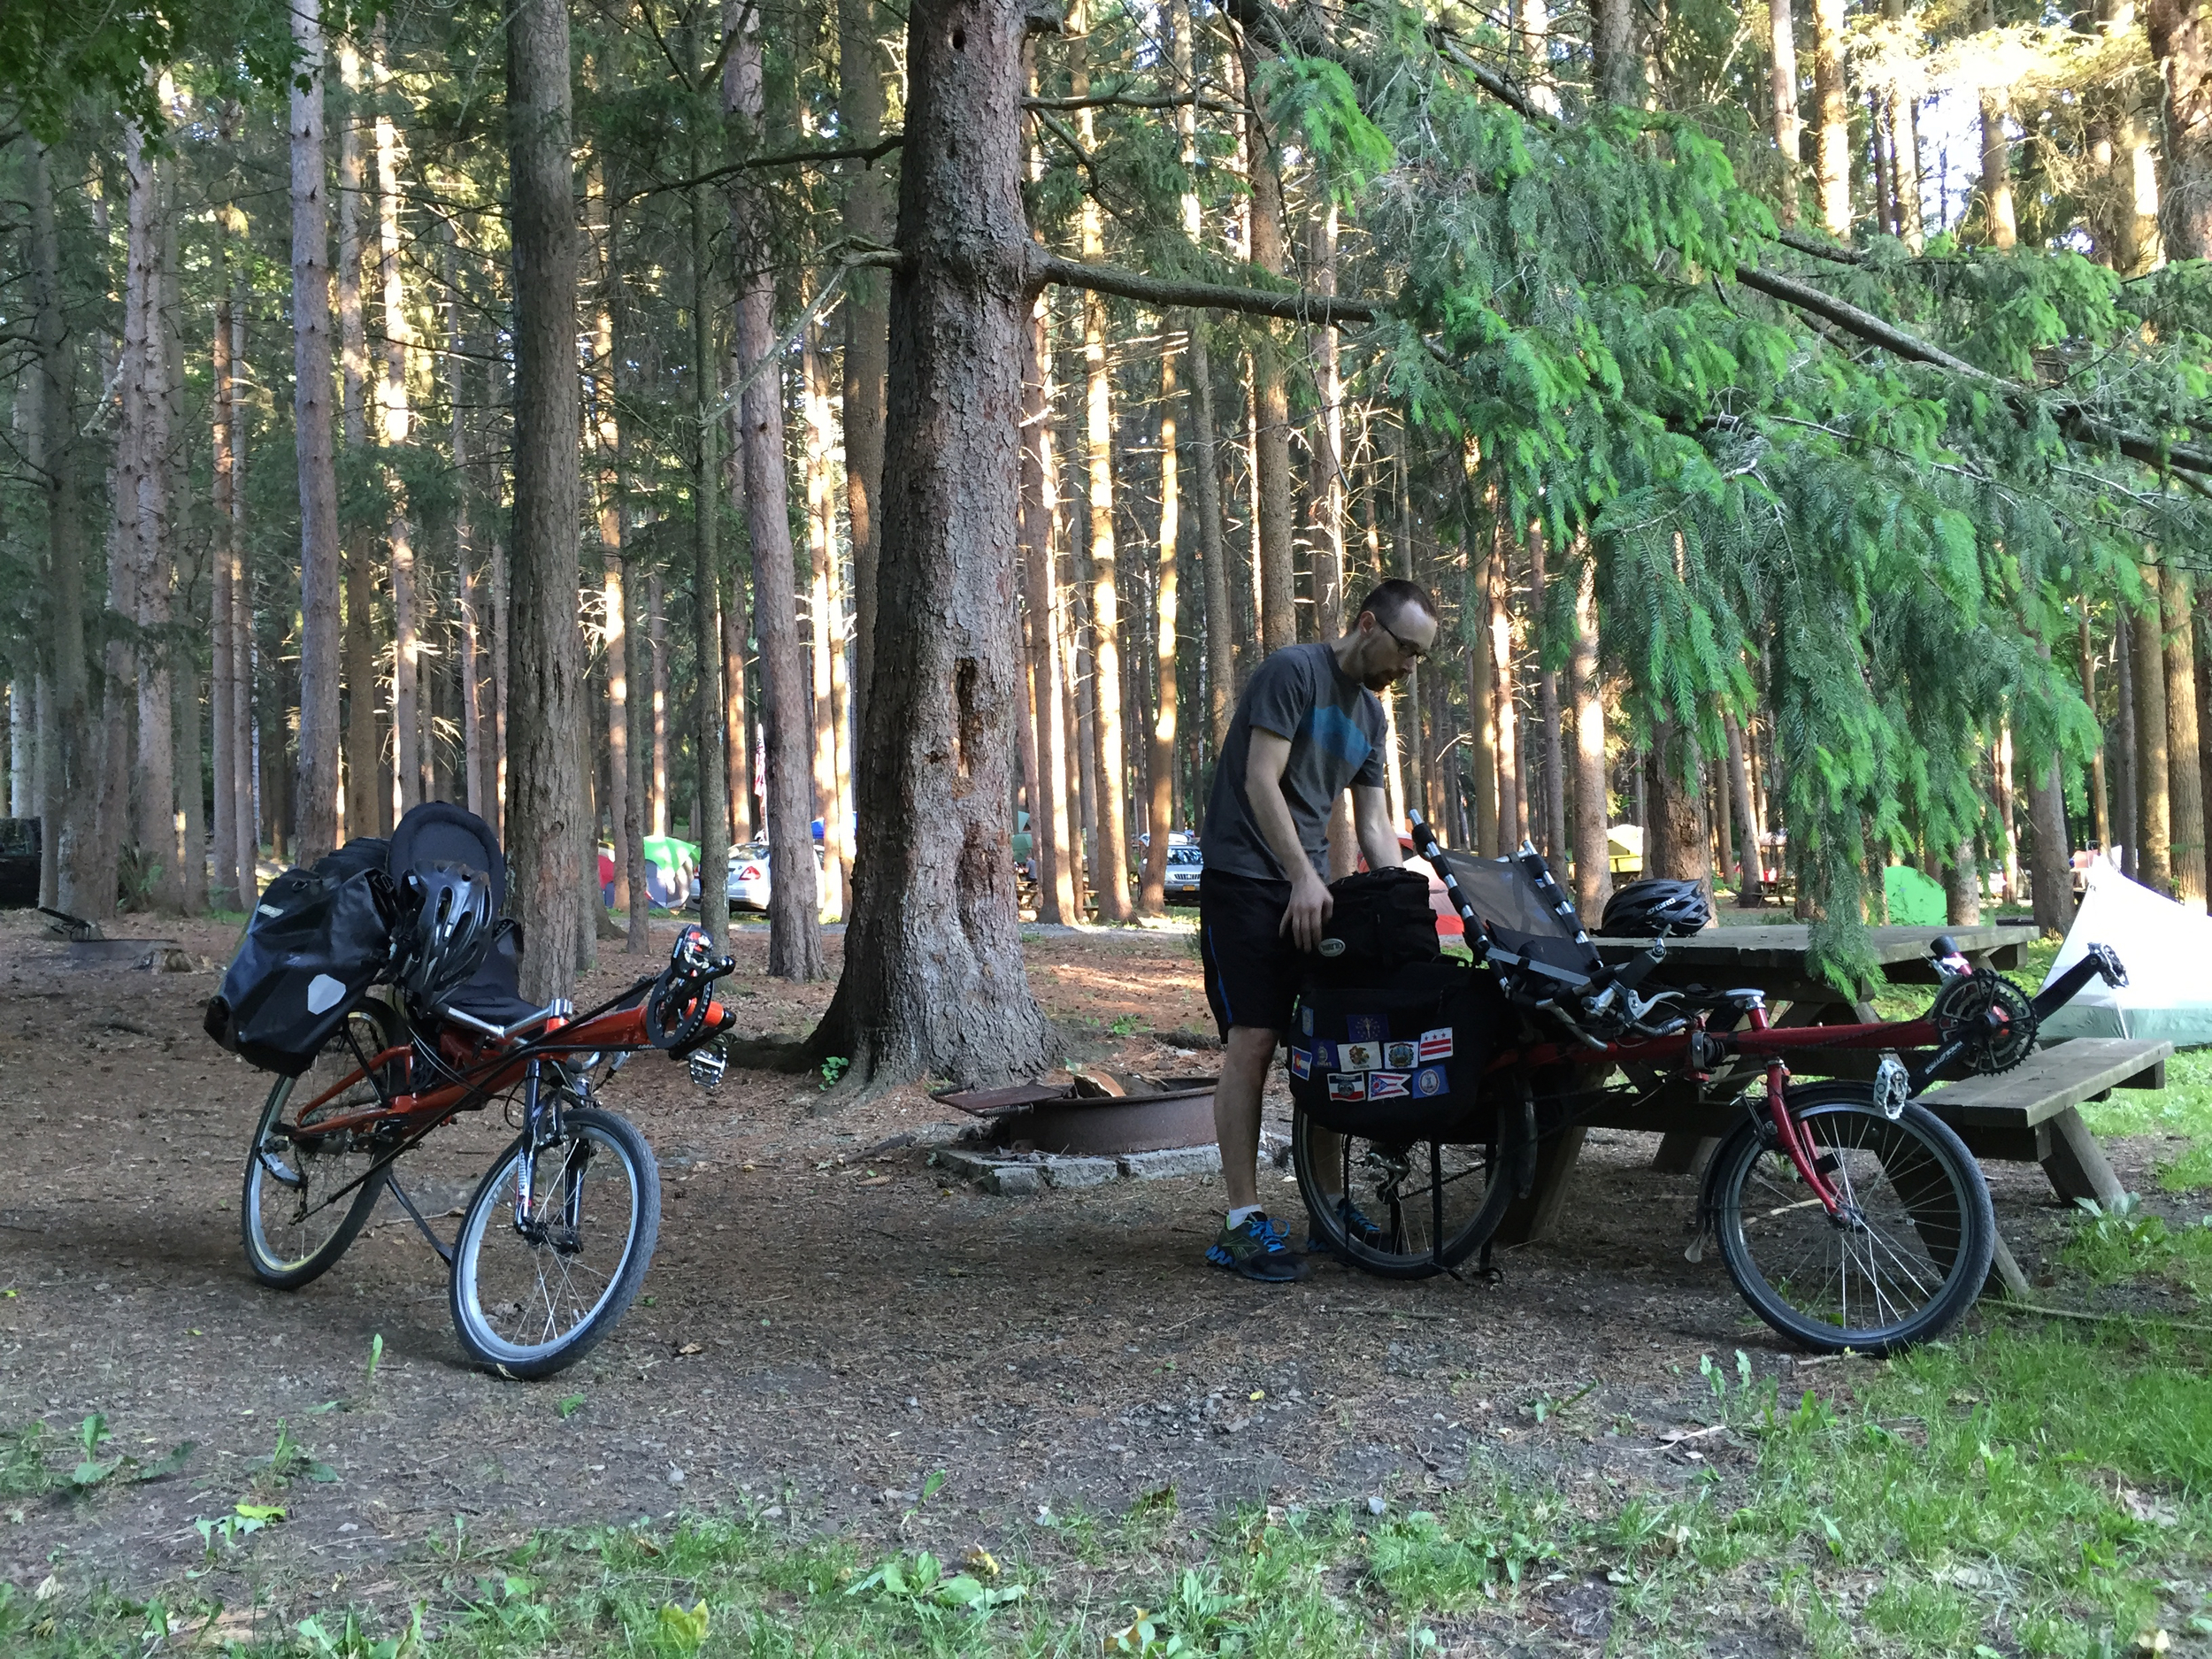 My Streetmachine (left) and Jacob's Haluzak at our campsite at Taconic State Park in Copake Falls, New York.